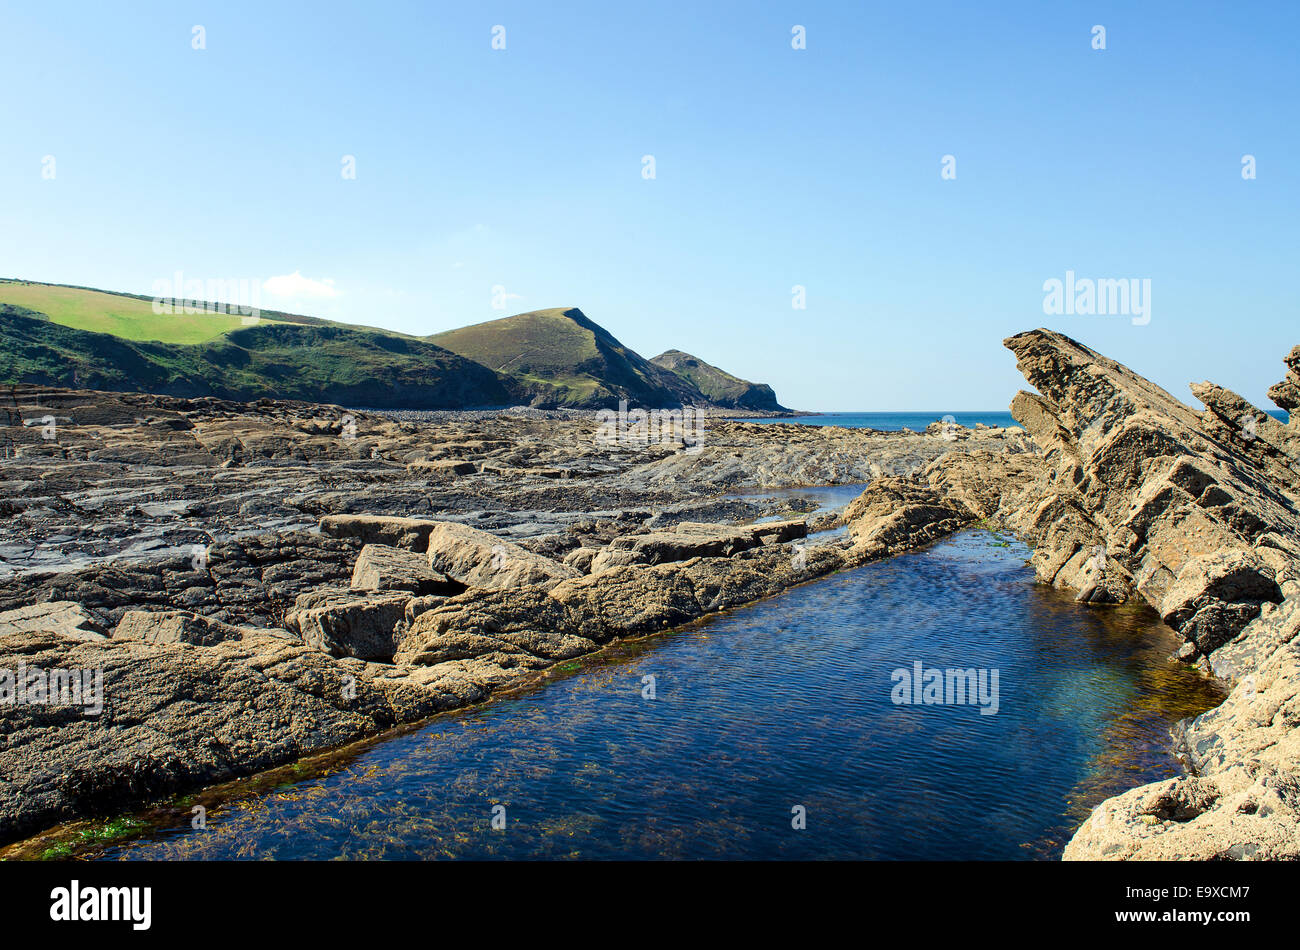 The rocky beach at Crackington Haven in North Cornwall, UK - Stock Image